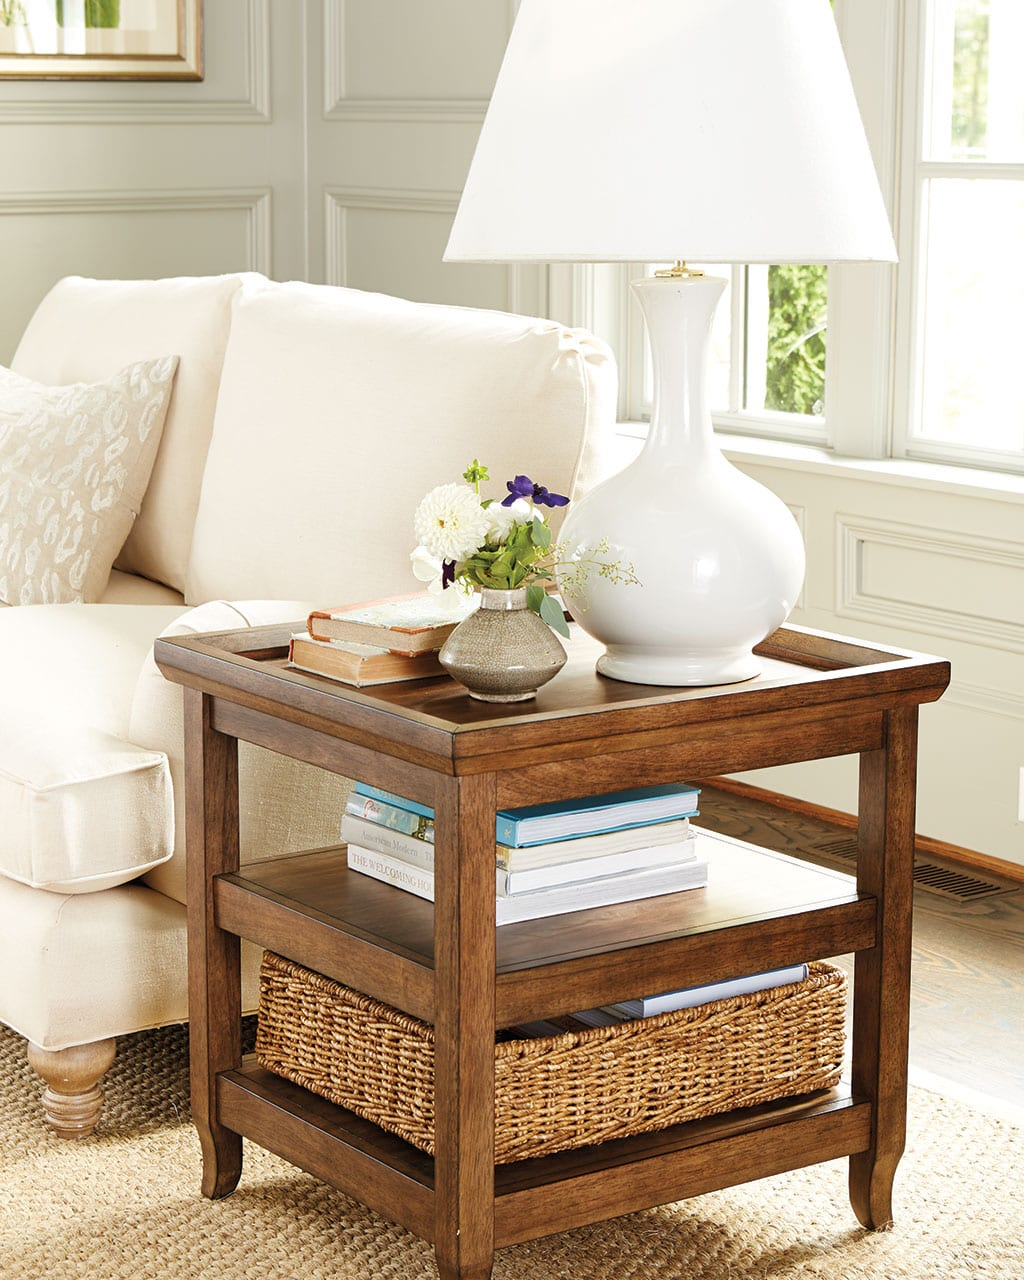 how side table decorate featured decorating end tables with lamps furniture royal inc unpainted cabinets chinese bedroom laura ashley home london console lamp ideas what did the